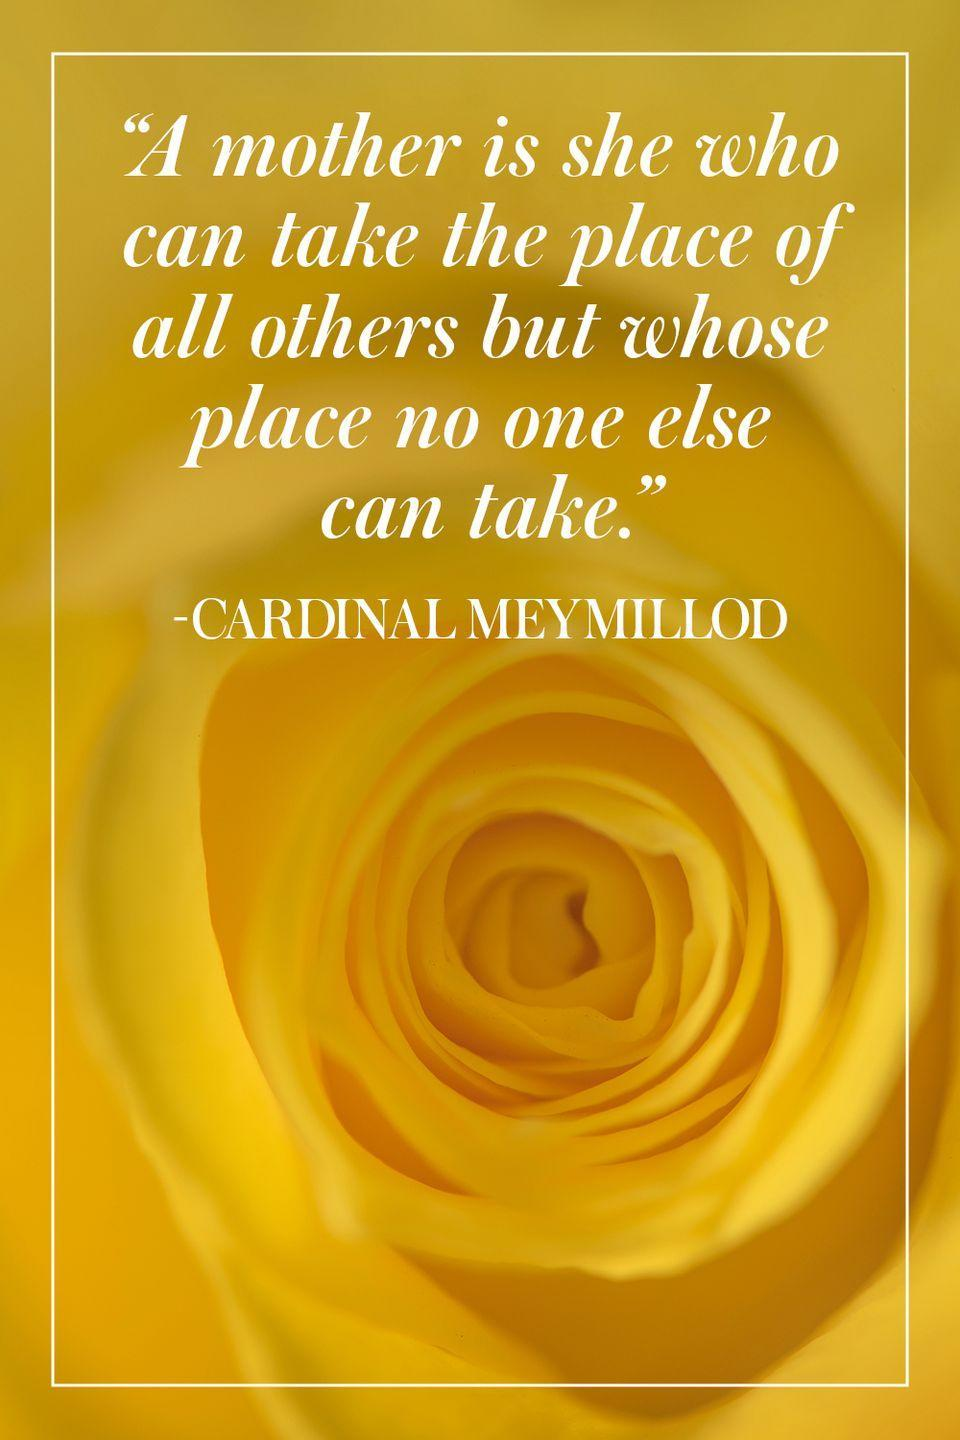 """<p>""""A mother is she who can take the place of all others but whose place no one else can take.""""</p><p>- Cardinal Meymillod</p>"""